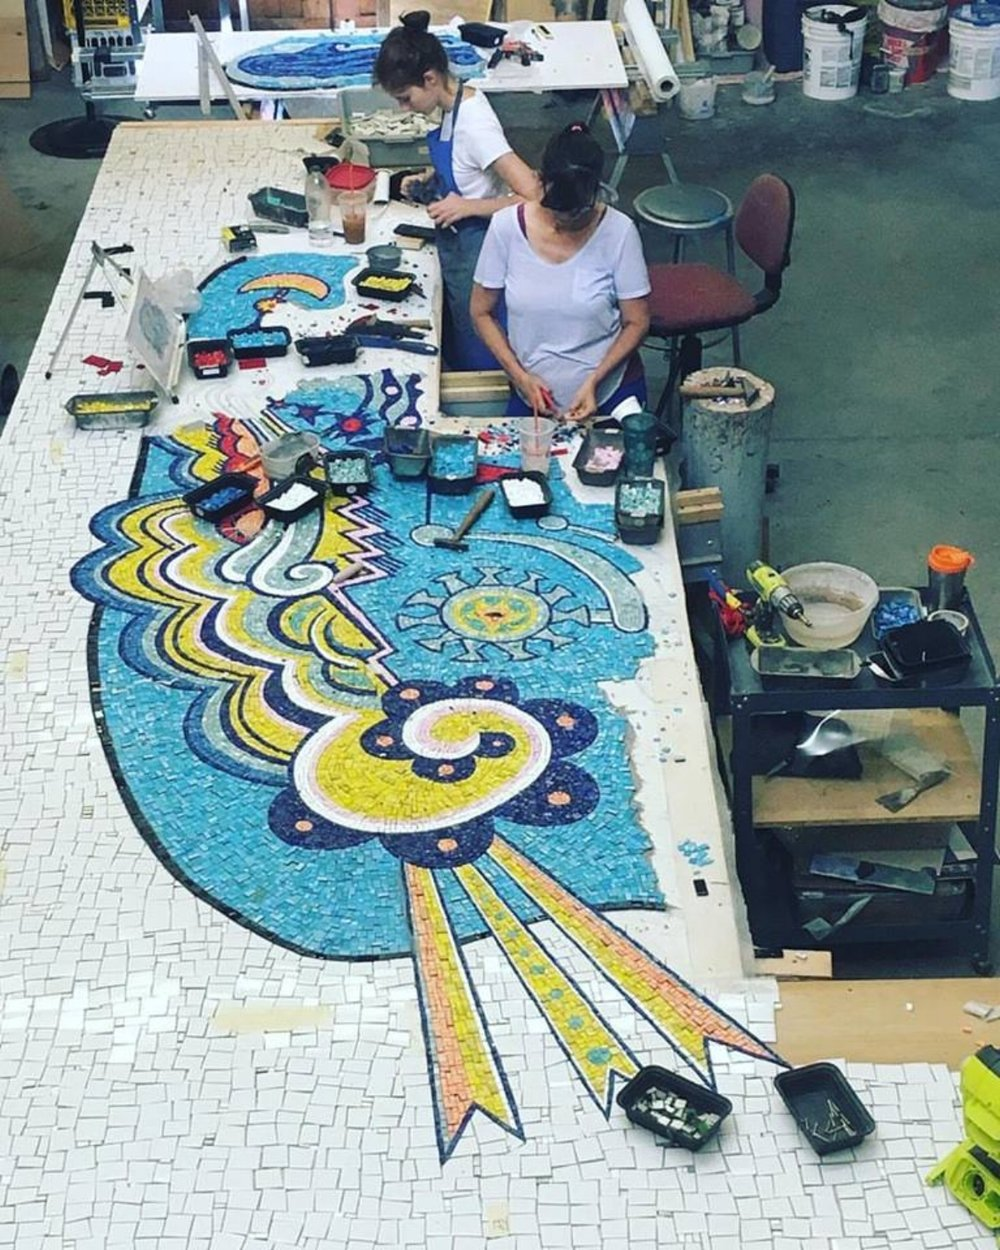 Image courtesy of Miotto Mosaics - Summer 2017